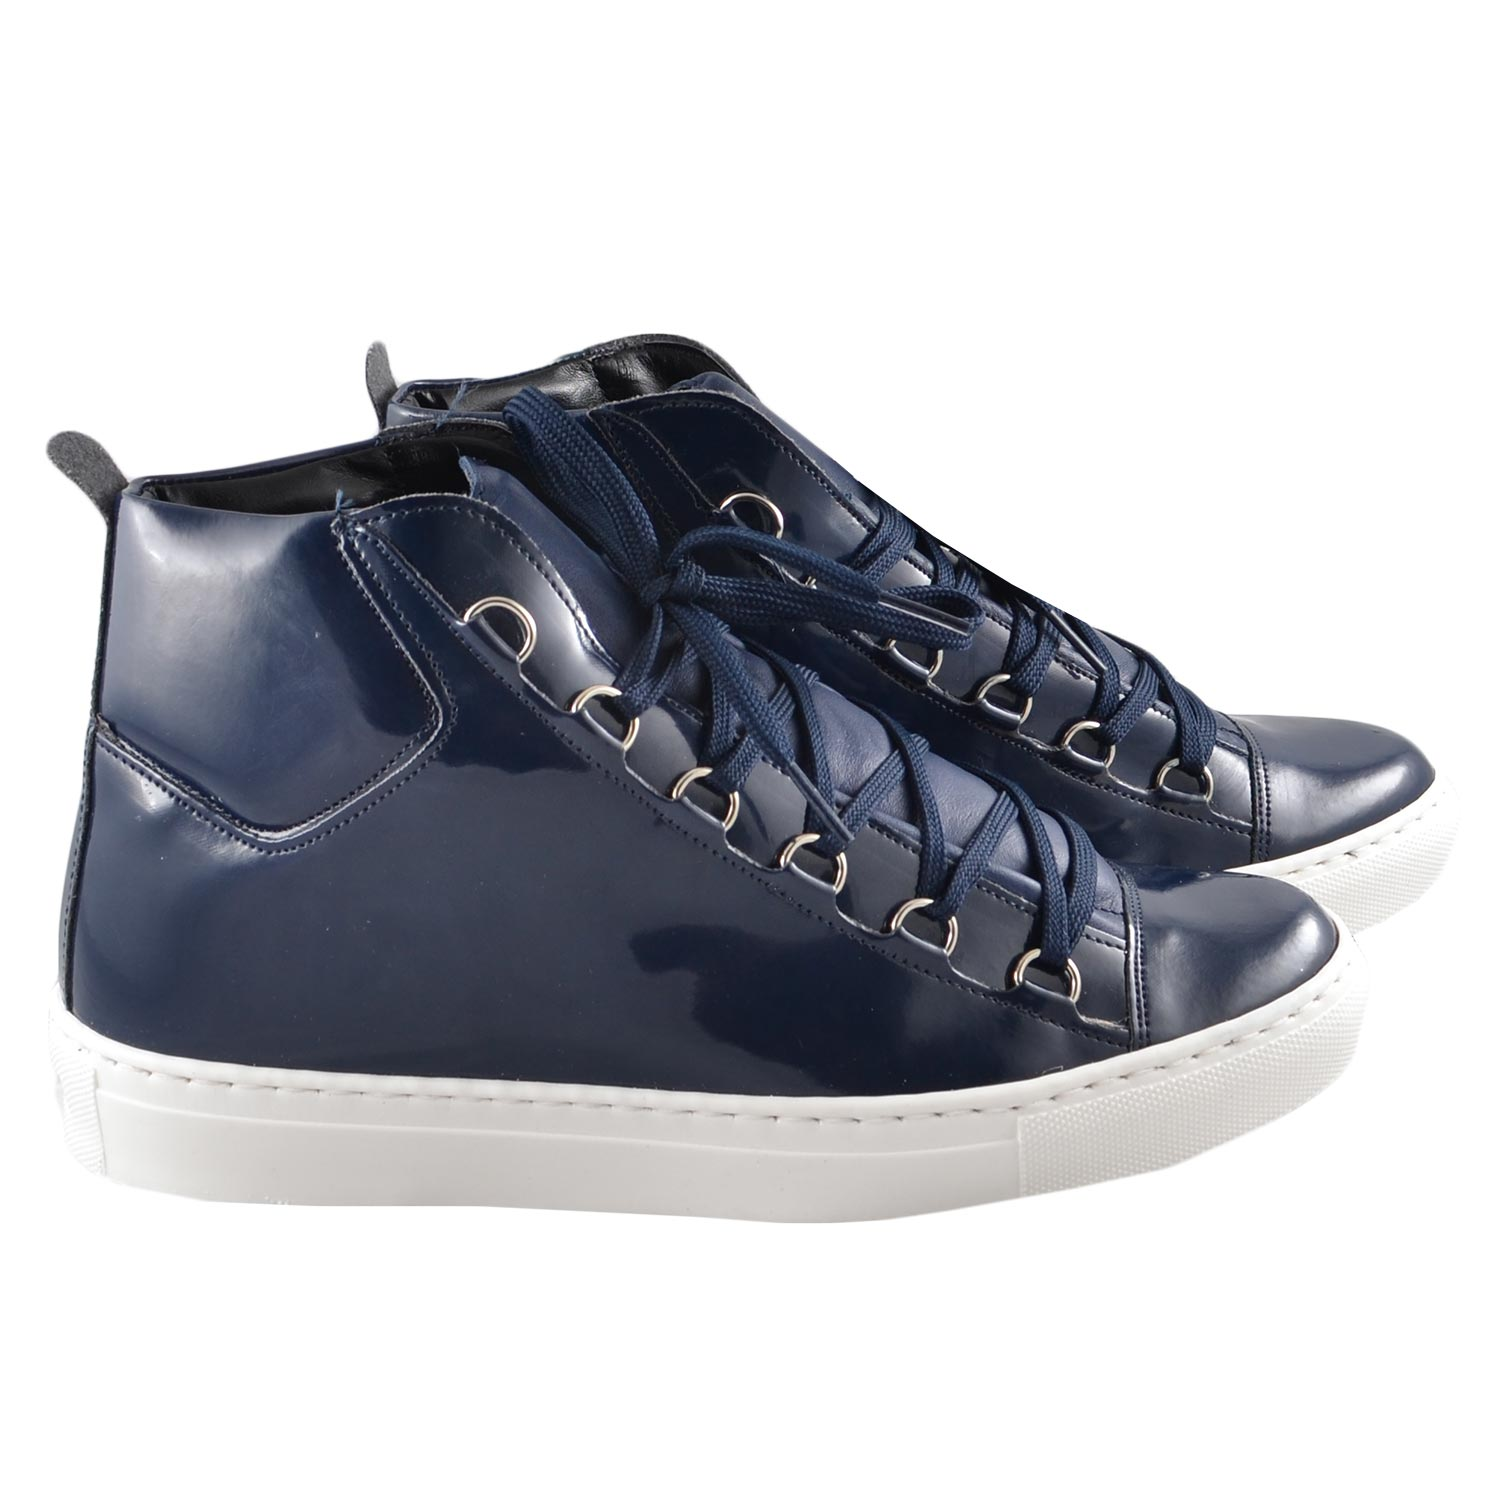 Sneakers alta balen blu lucido uomo sneakers alta Made in Italy | MaluShoes